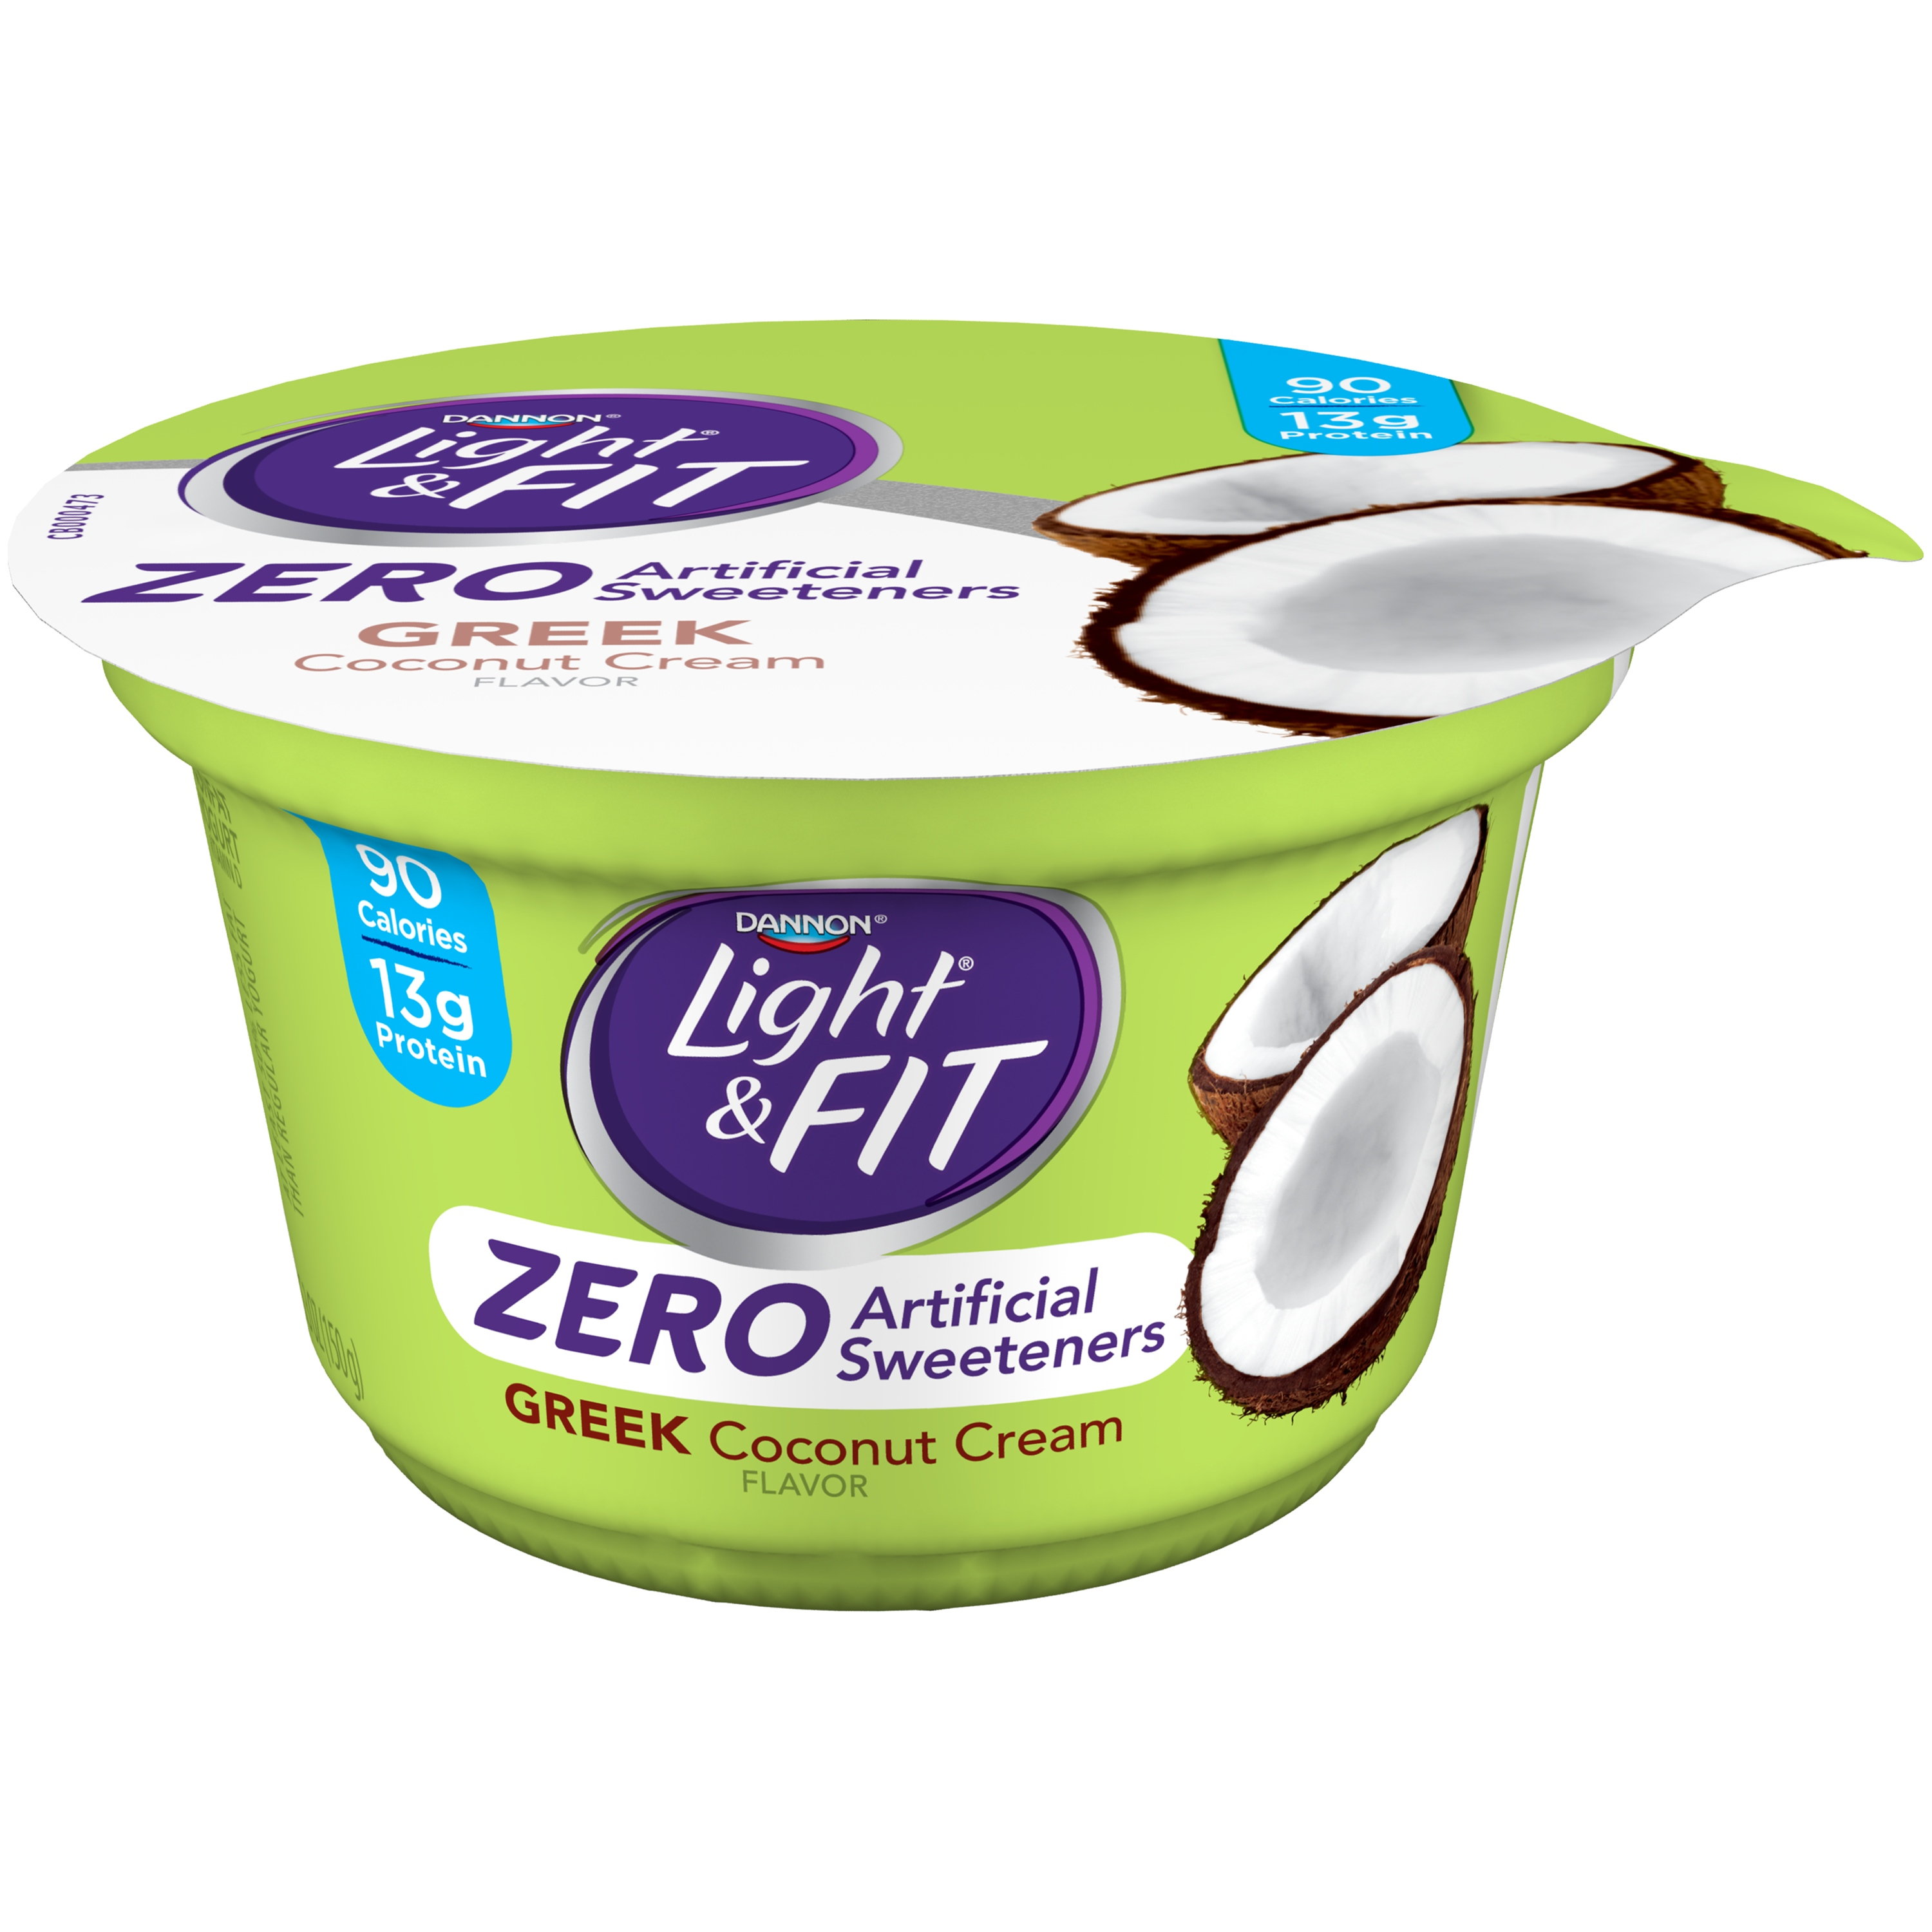 Dannon® Light & Fit® Greek Zero Artificial Sweeteners Nonfat Yogurt Coconut Cream 5.3oz Sing Serve